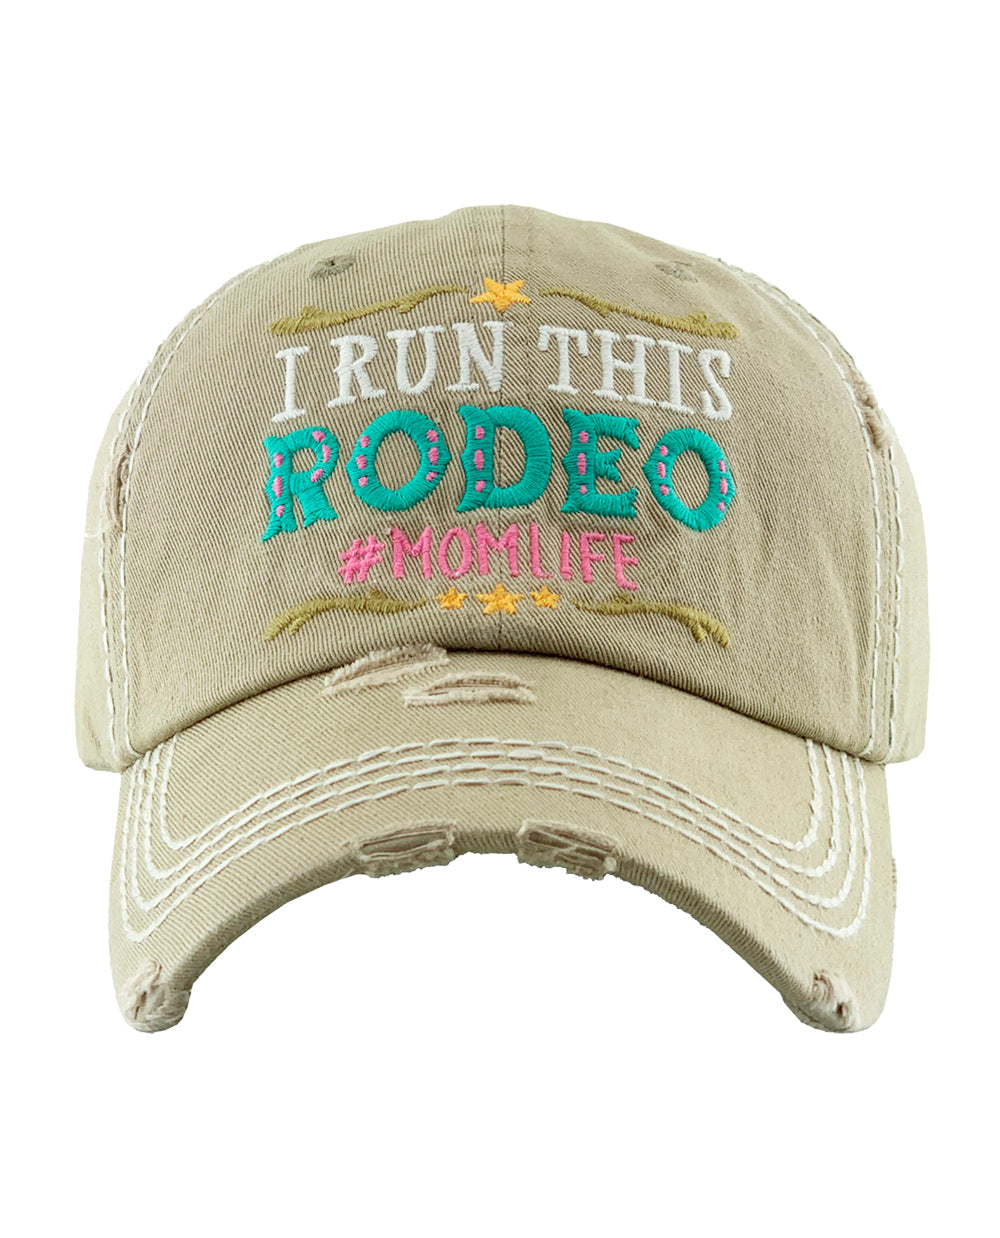 Distressed Khaki I Run This Rodeo Cowgirl Ball Cap